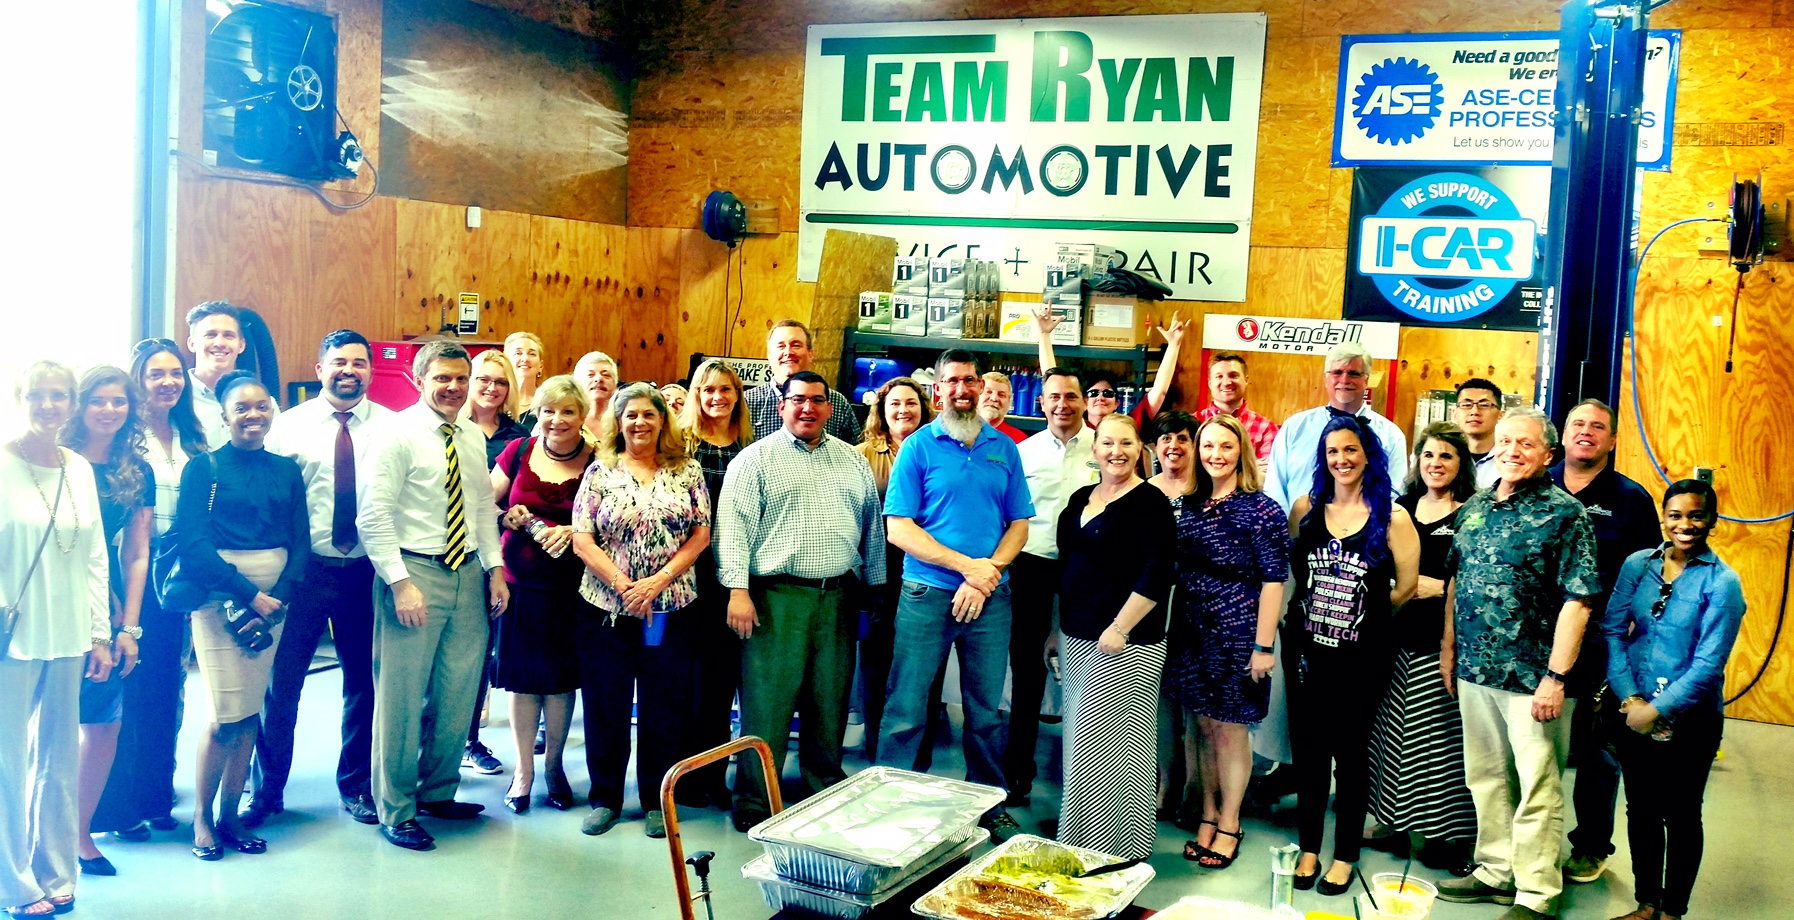 team ryan automotive best auto repair.jpg